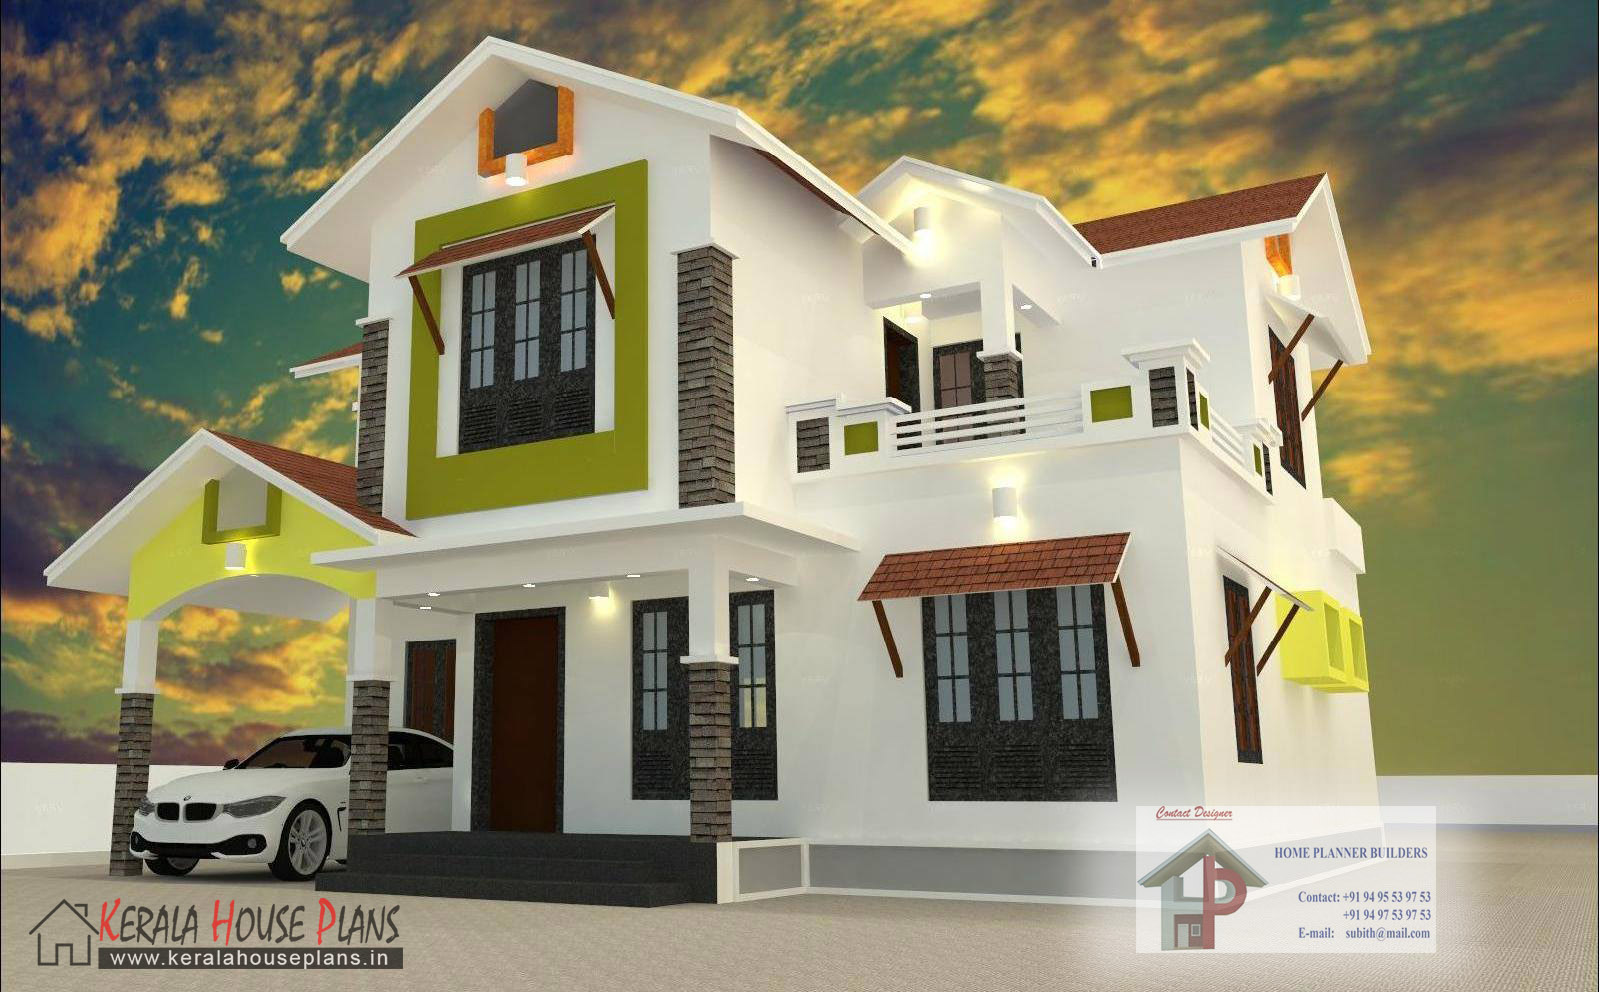 New house plans in kerala 2017 for New house plans with pictures